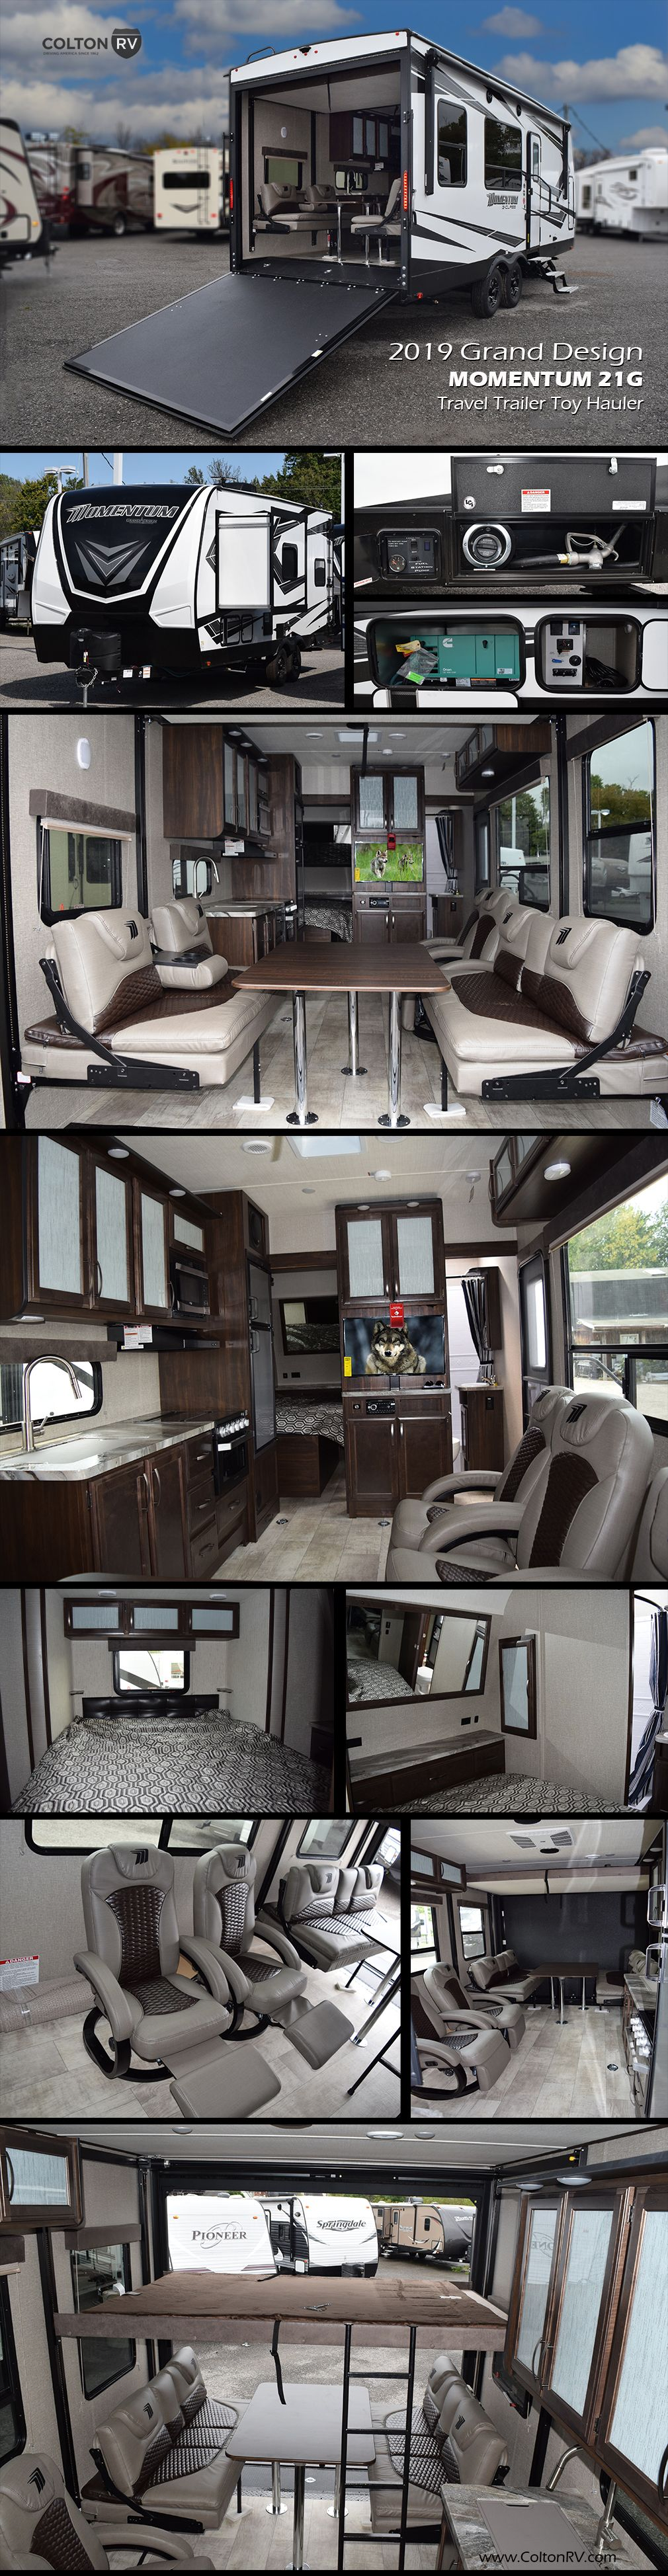 Looking for adventure and fun this grand design momentum